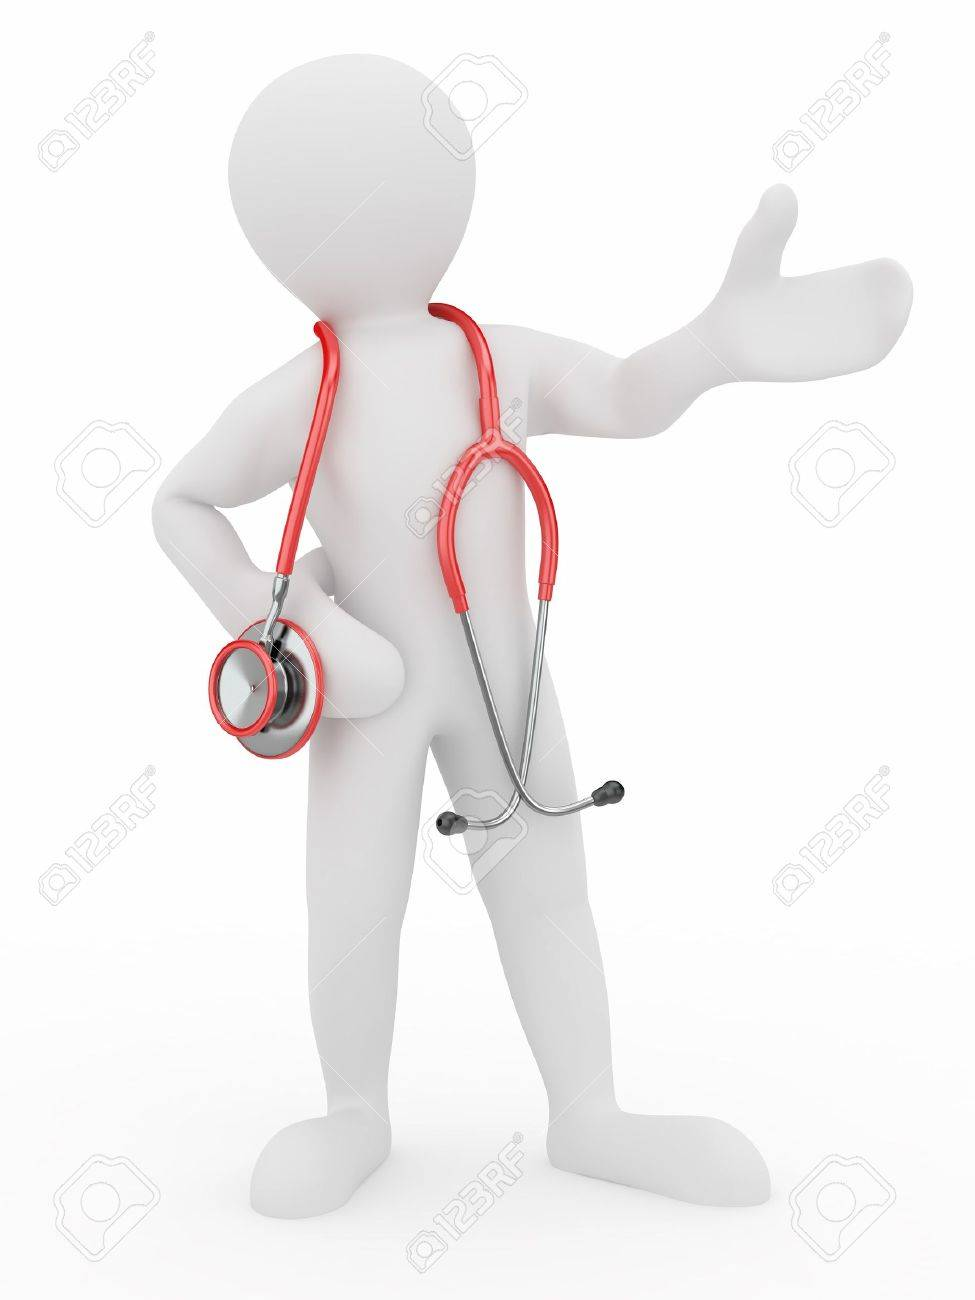 Men with stethoscope on white isolated background. 3d Stock Photo - 9388136